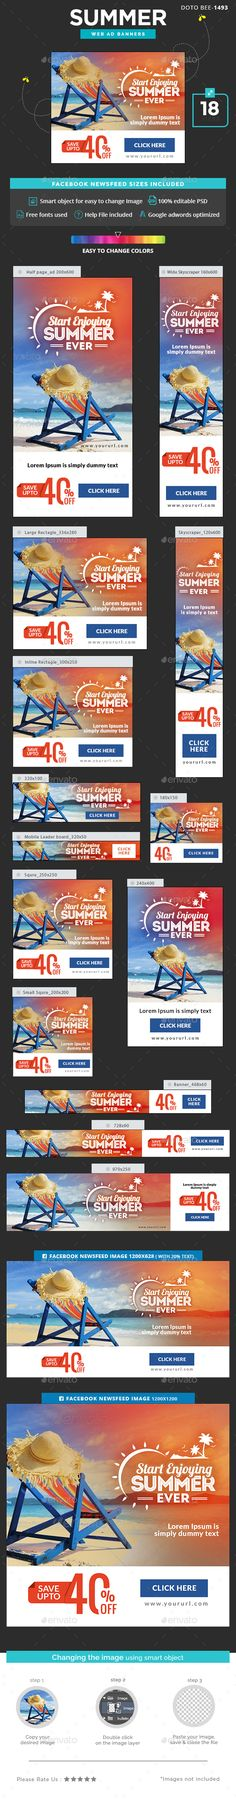 Summer Sale Banners Template PSD #ads Download here: http://graphicriver.net/item/summer-sale-banners/16692221?ref=ksioks